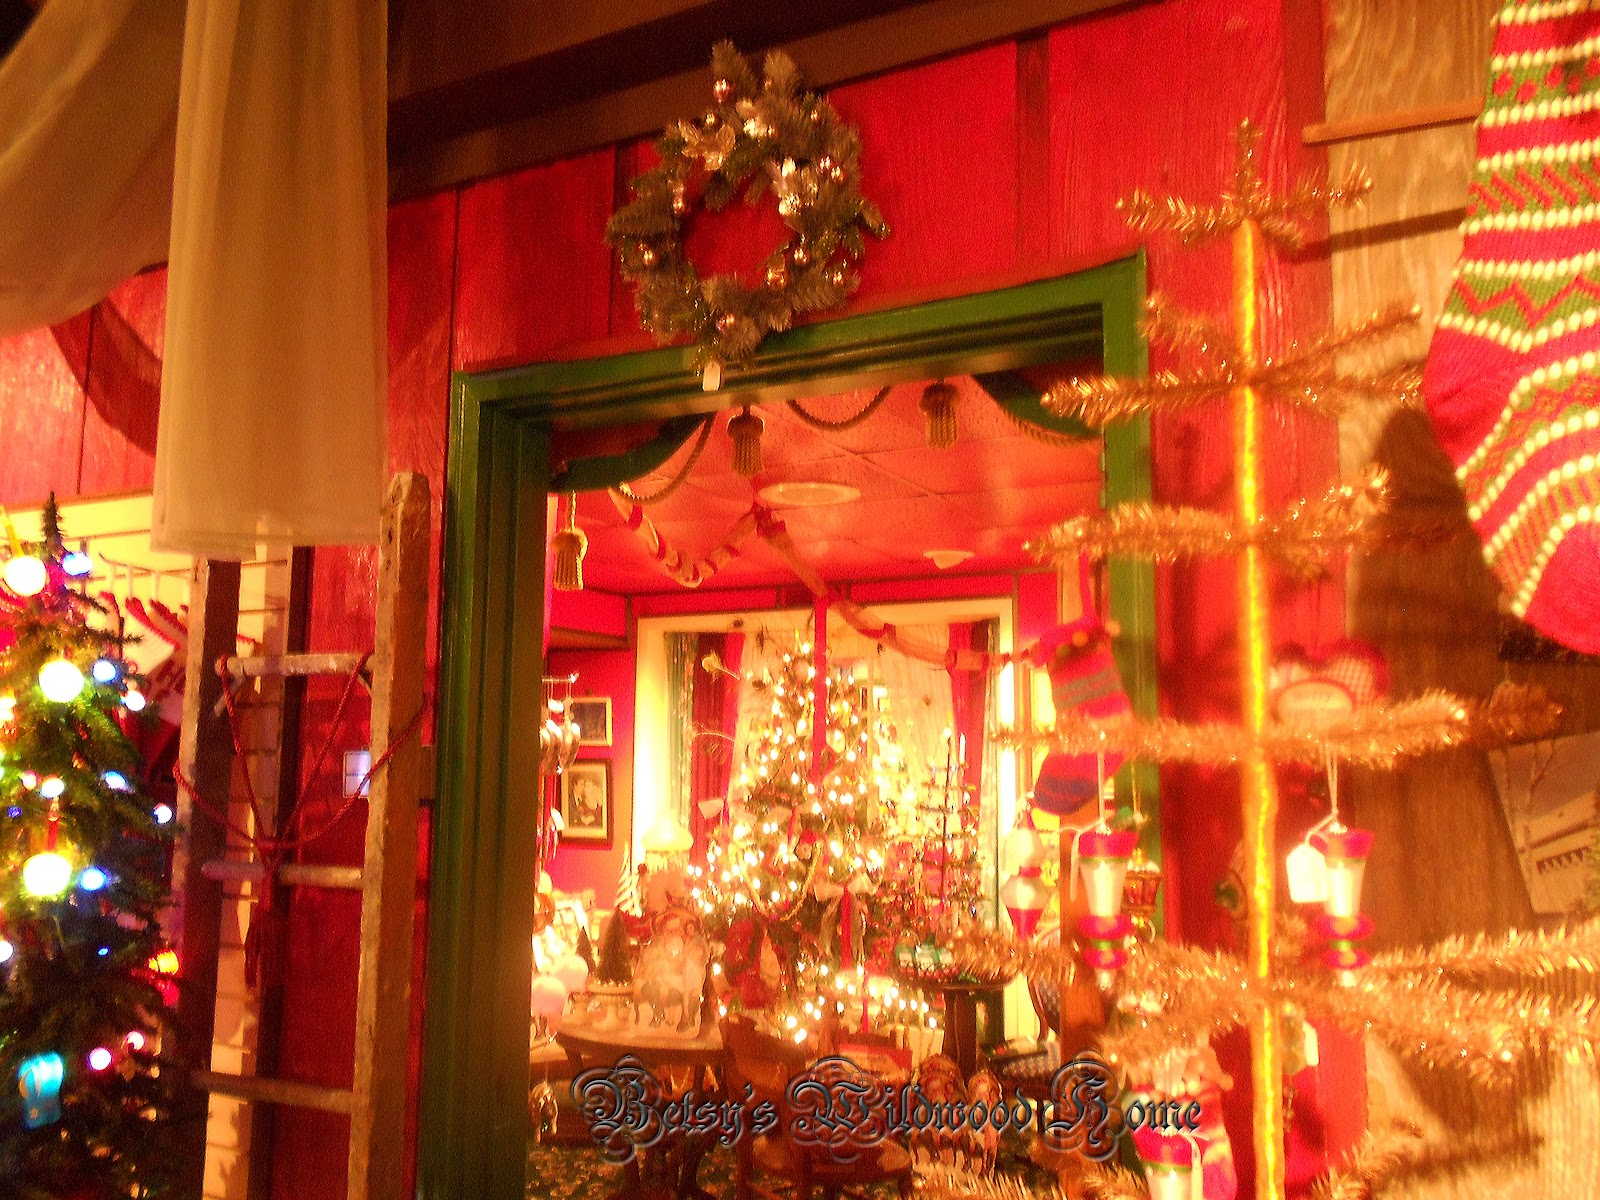 Wildwood Christmas: Christmas shop pictures